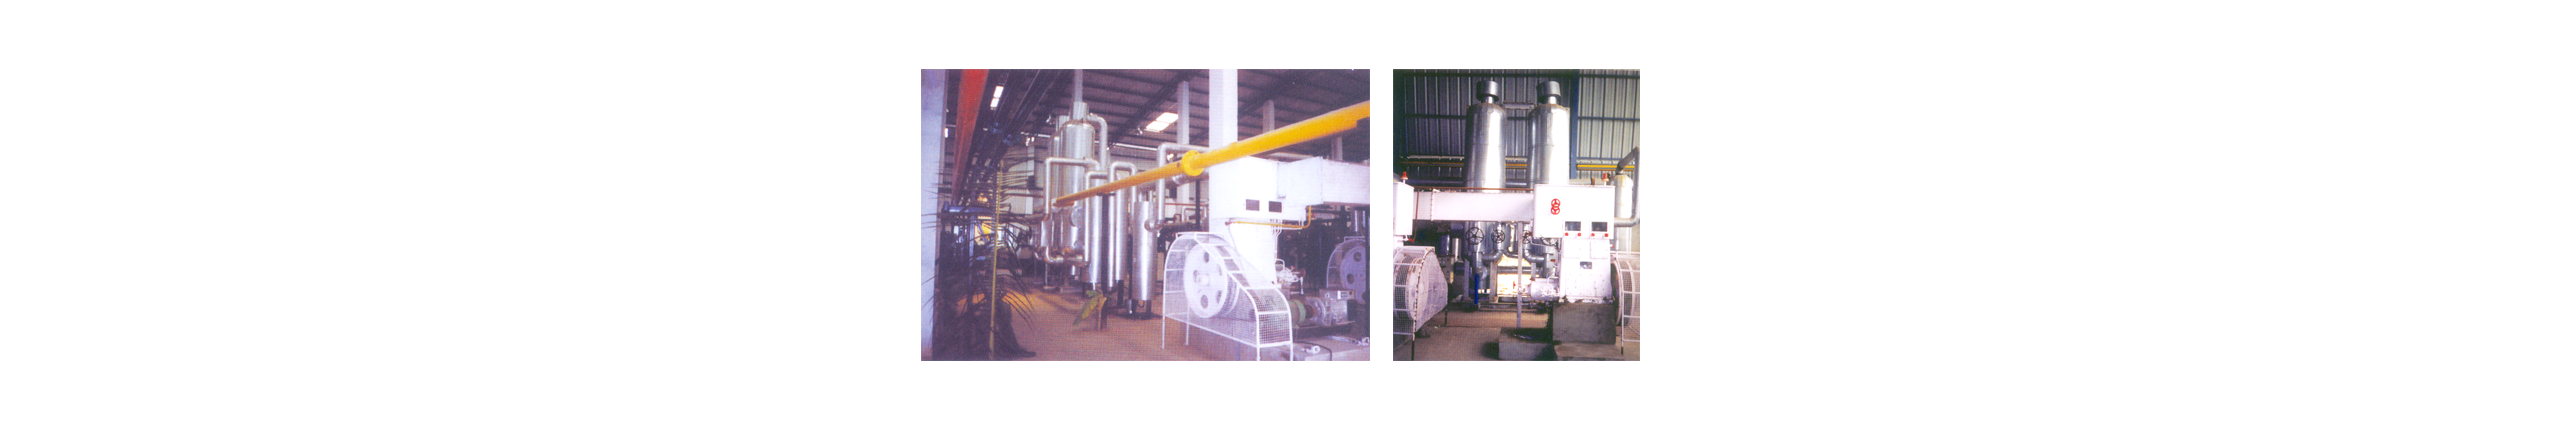 Sanghi Overseas  is a leading manufacturer & exporter of Oxygen Plants, Nitrogen Plants, Air Separation Plants, PSA Plants, Nitrous Oxide Plants and Carbon Di-oxide Plants. The Company also manufactures and exports related Allied Equipments for these Plants, as well as High Pressure Seamless Cylinders for different types of Gases.  The Company's engineering & fabrication facility at Taloja is a sprawling Complex of nearly 21, 000 sq. meters, located around 20 kms away from Mumbai. It is lined up with the most modern facilities of Plant manufacturing Machinery, Tooling and Assembly lines for manufacturing state-of-the-Art Plants.  The main product range includes Oxygen Plants, Nitrogen Plants, Air Separation Plants ranging from 40 to 1000 Cu.m/hr capacity, Acetylene Plants from 45 to 200 Cu.m/hr capacity, Nitrous Oxide Plants from 8 to 50 Cu.m/hr capacities. & CO2 plants from 50 to 1000 Kgs/hr. In addition to the above, the company also offers Tonnage Air Separation Plants, capable of producing Liquid Oxygen, Nitrogen & Argon for the Steel Industry and other Process Industries.  The Company has established over 500 Projects at various locations within India.